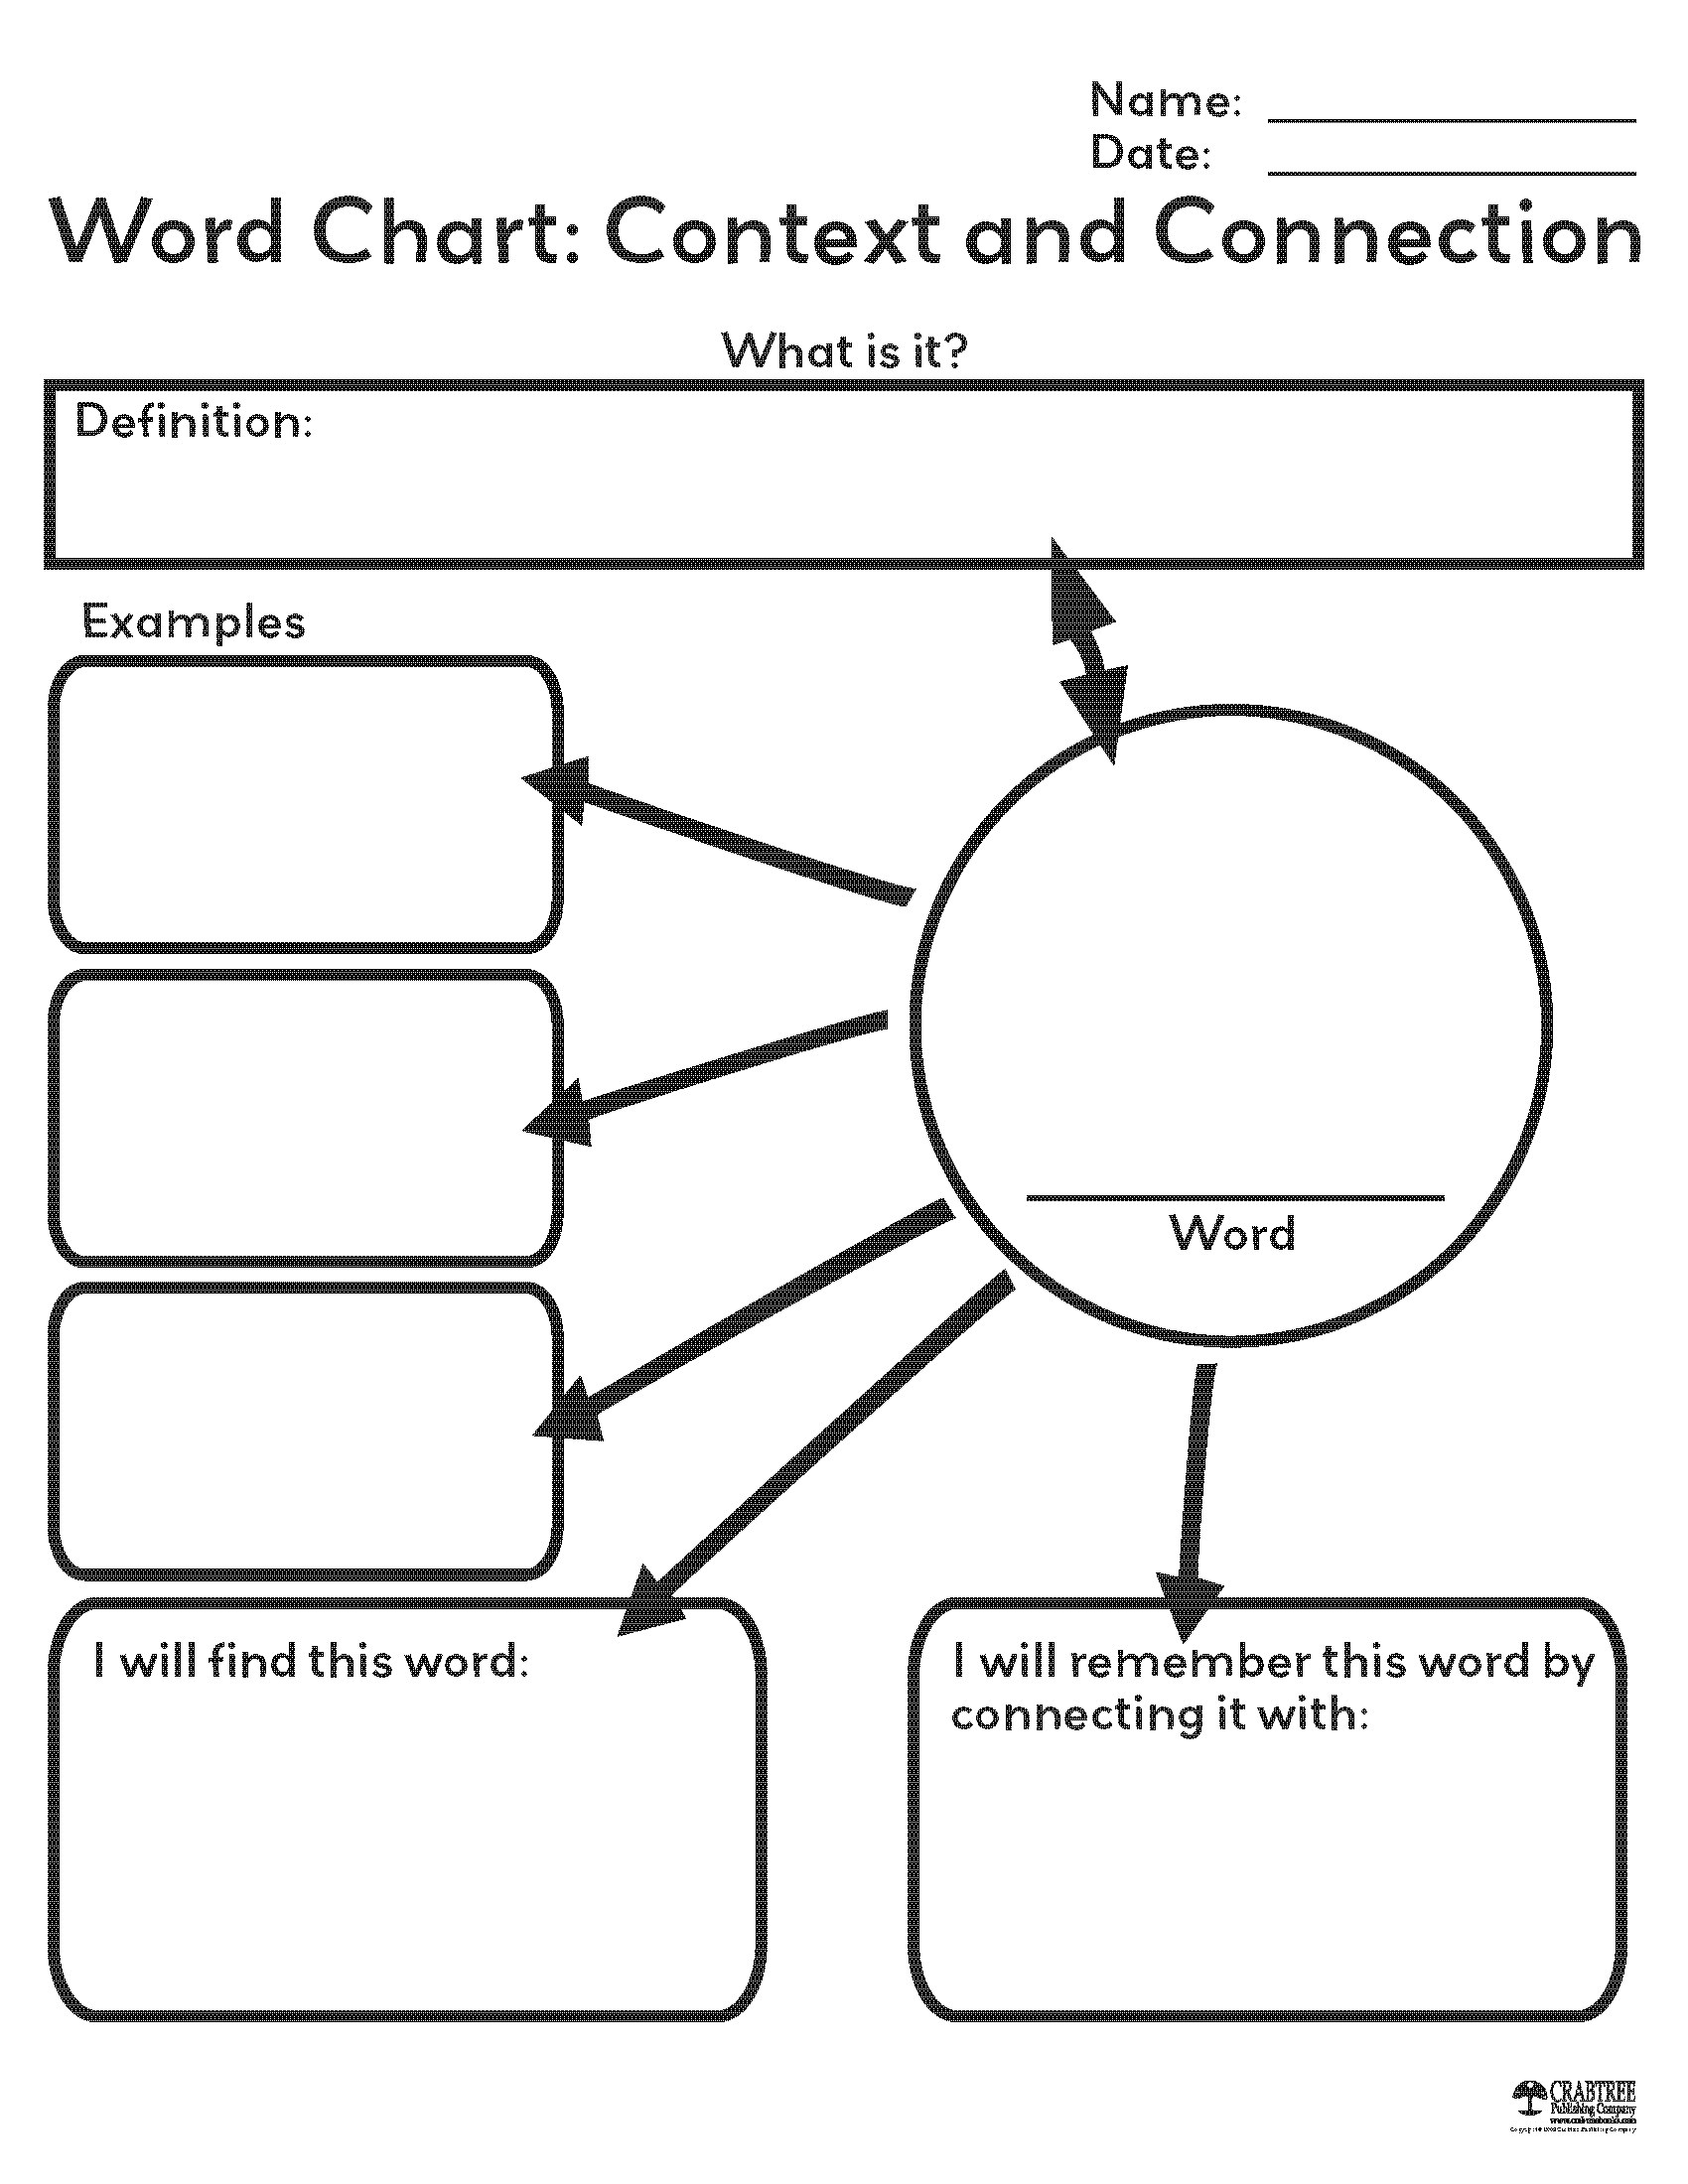 Free Printable Word Chart From Crabtree Publishing | School - Free Printable Graphic Organizers